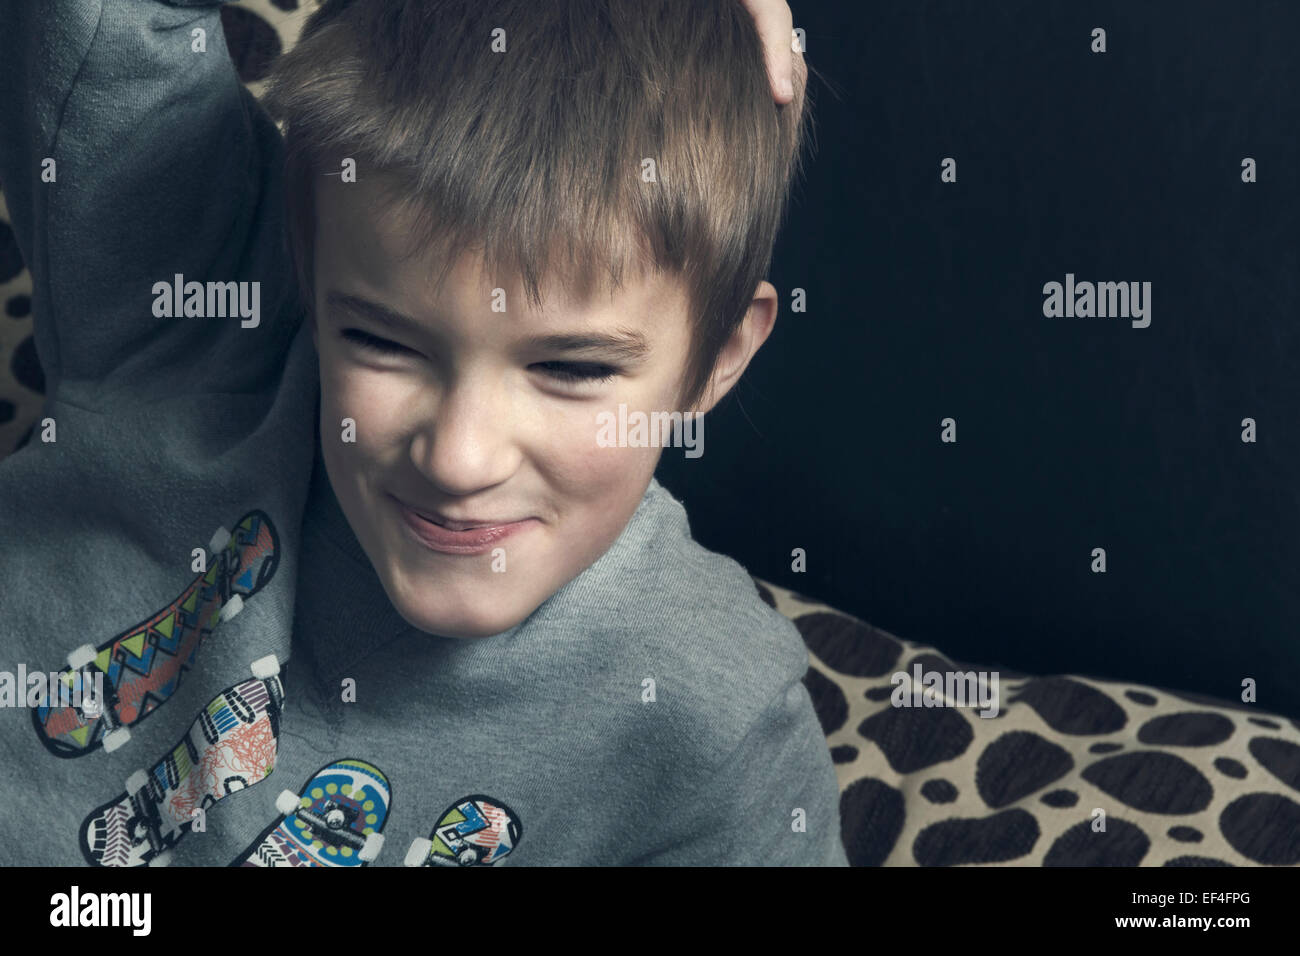 Young boy in living room laughing. - Stock Image